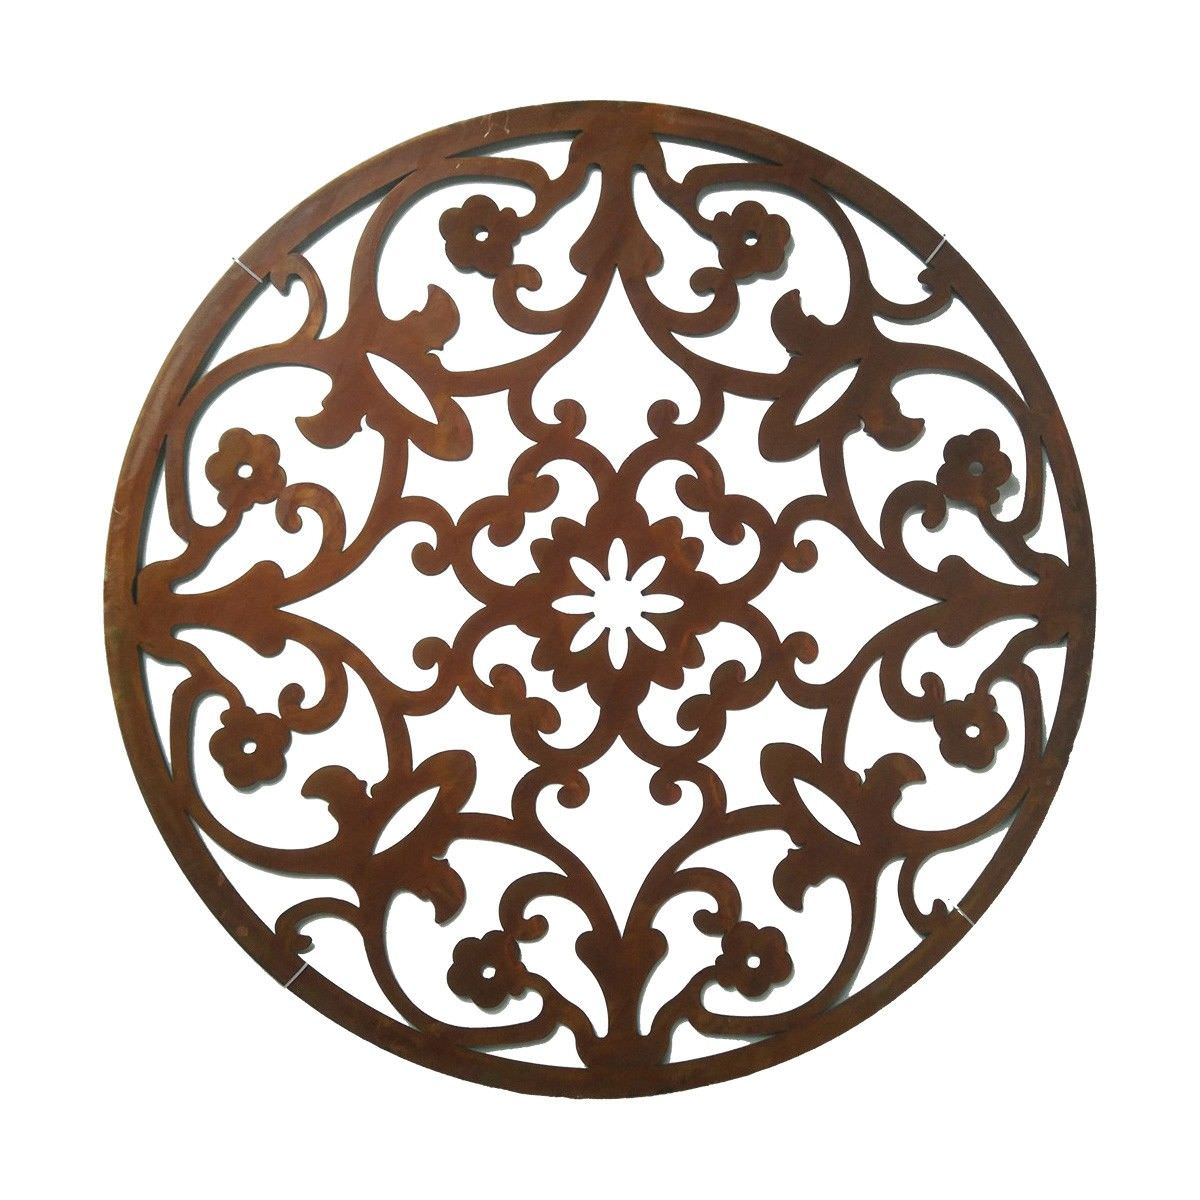 Floral Silhouette Laser Cut Iron Round Wall Art, Rust, 100cm